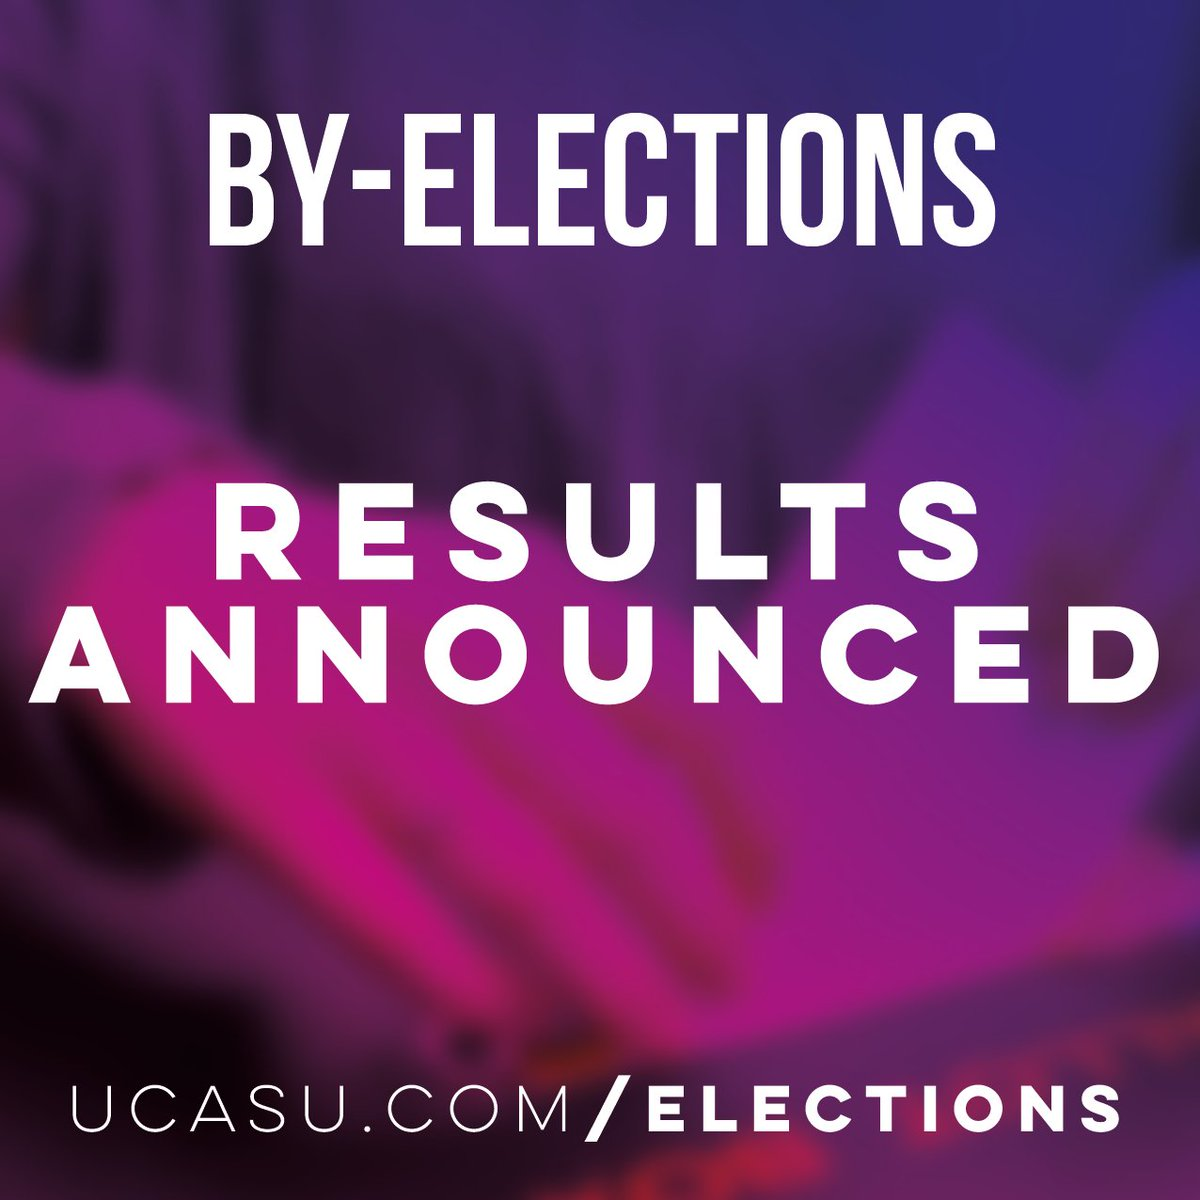 test Twitter Media - BY-ELECTION RESULTS ARE IN!  Head over to our website to view the full results at https://t.co/QthZREpW0h https://t.co/hlGghuYma0